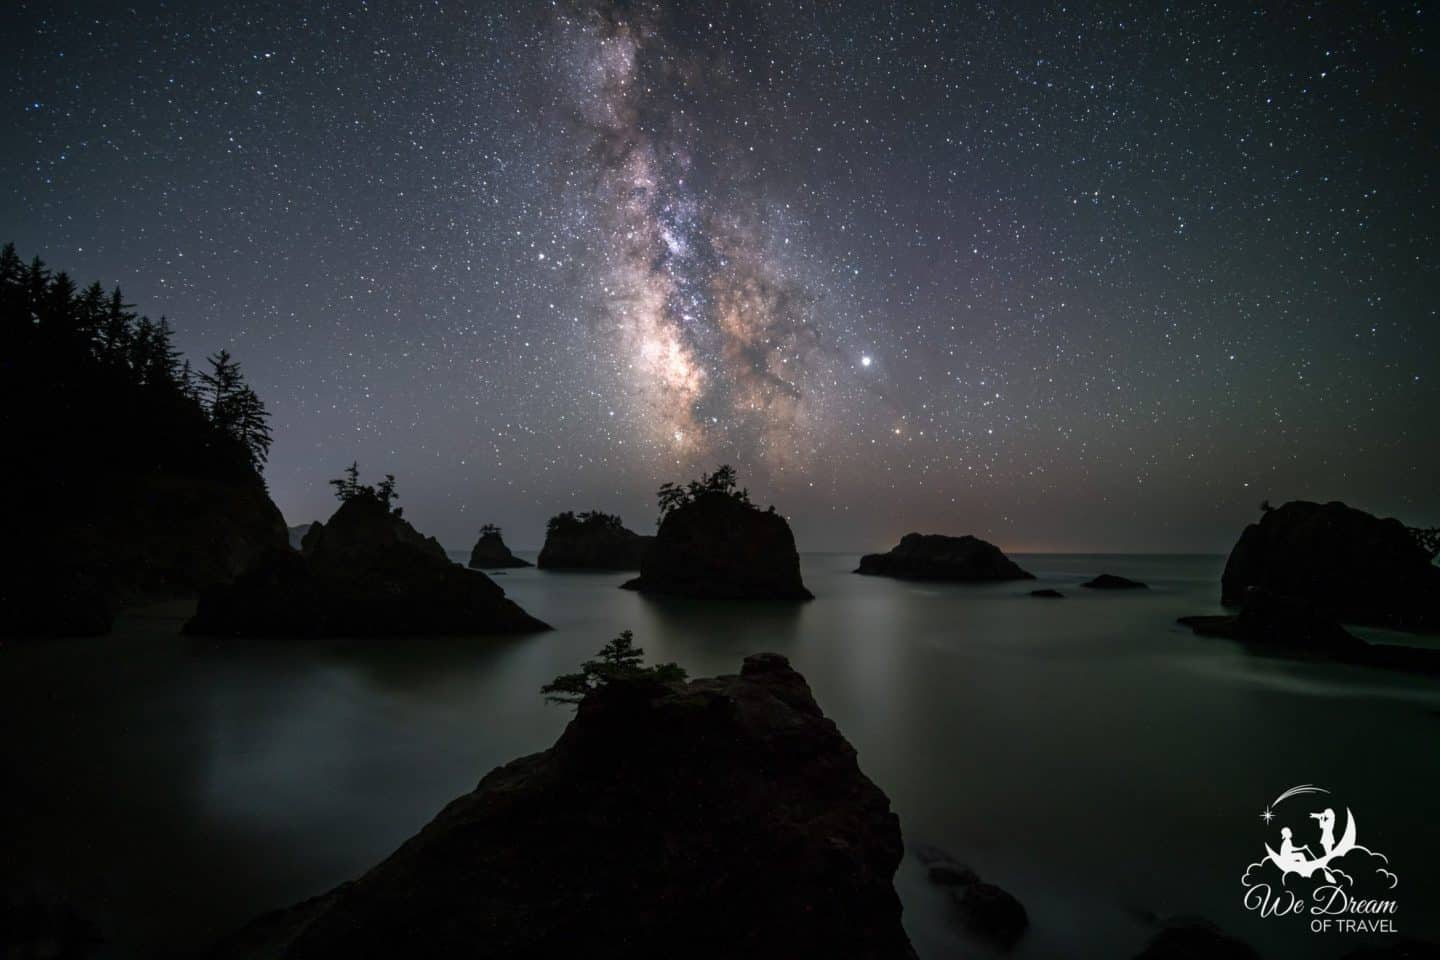 Secret Beach Milky Way night photography of Oregon